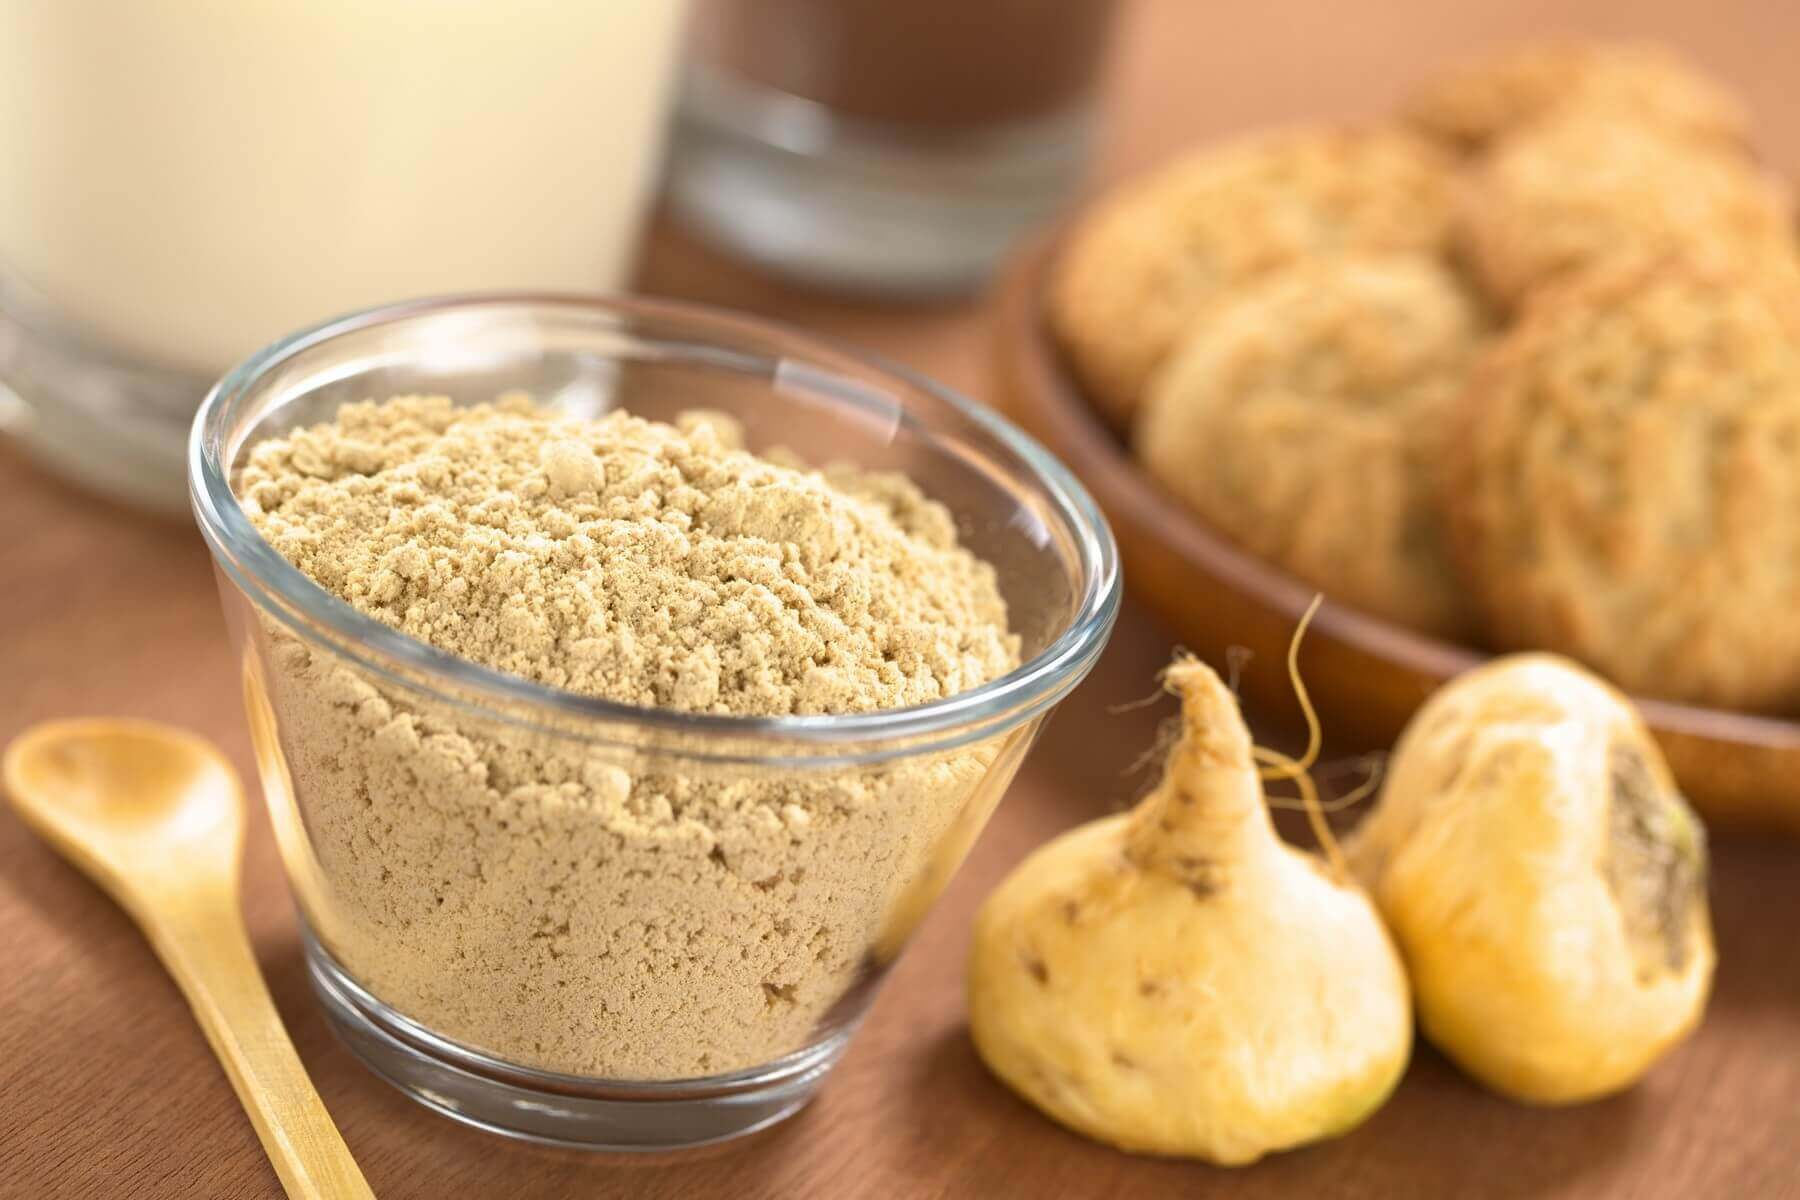 Maca root: What can it do for you?